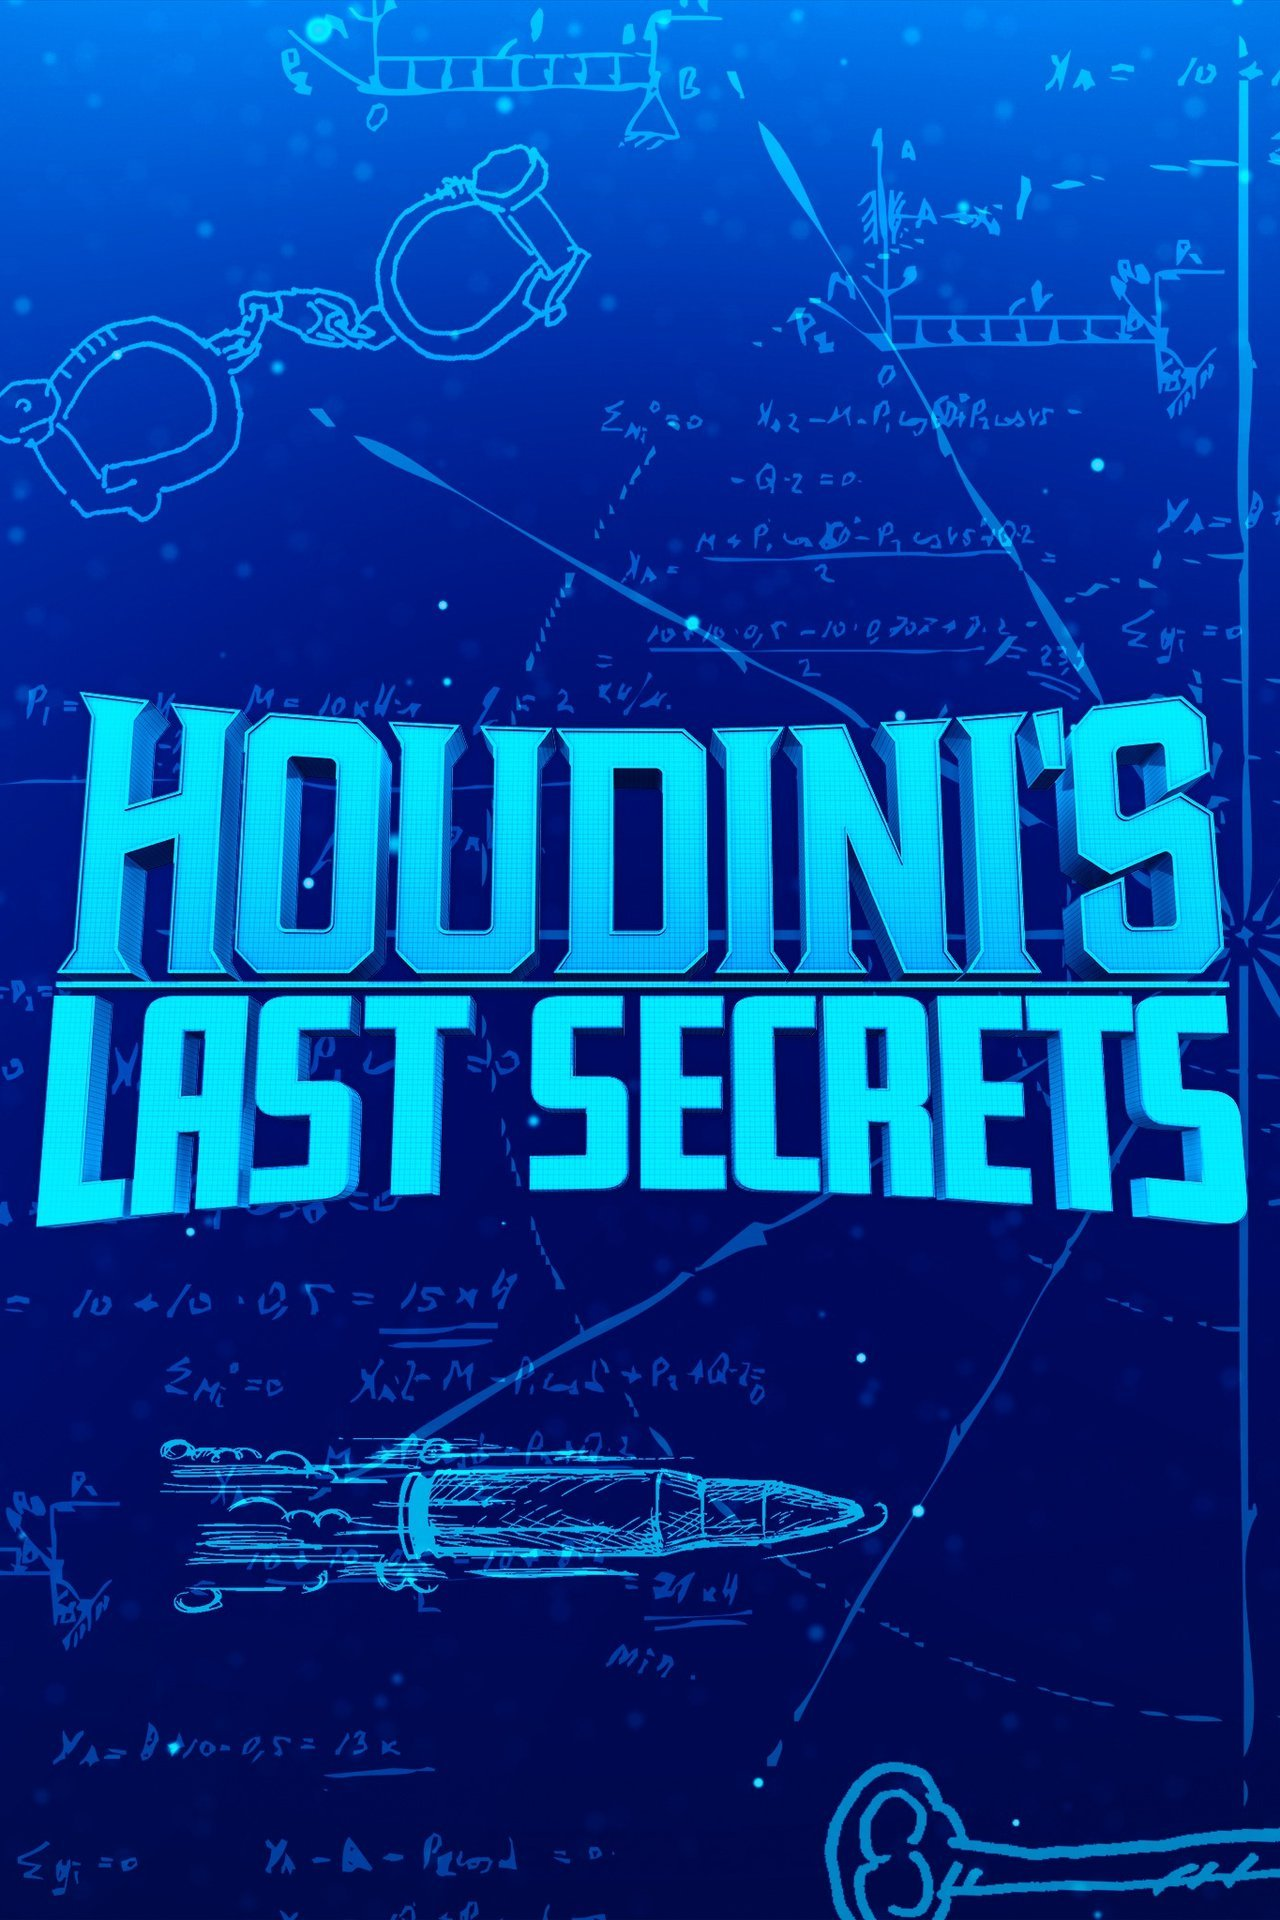 Houdini's Last Secrets (TV Series 2019– ) - IMDb